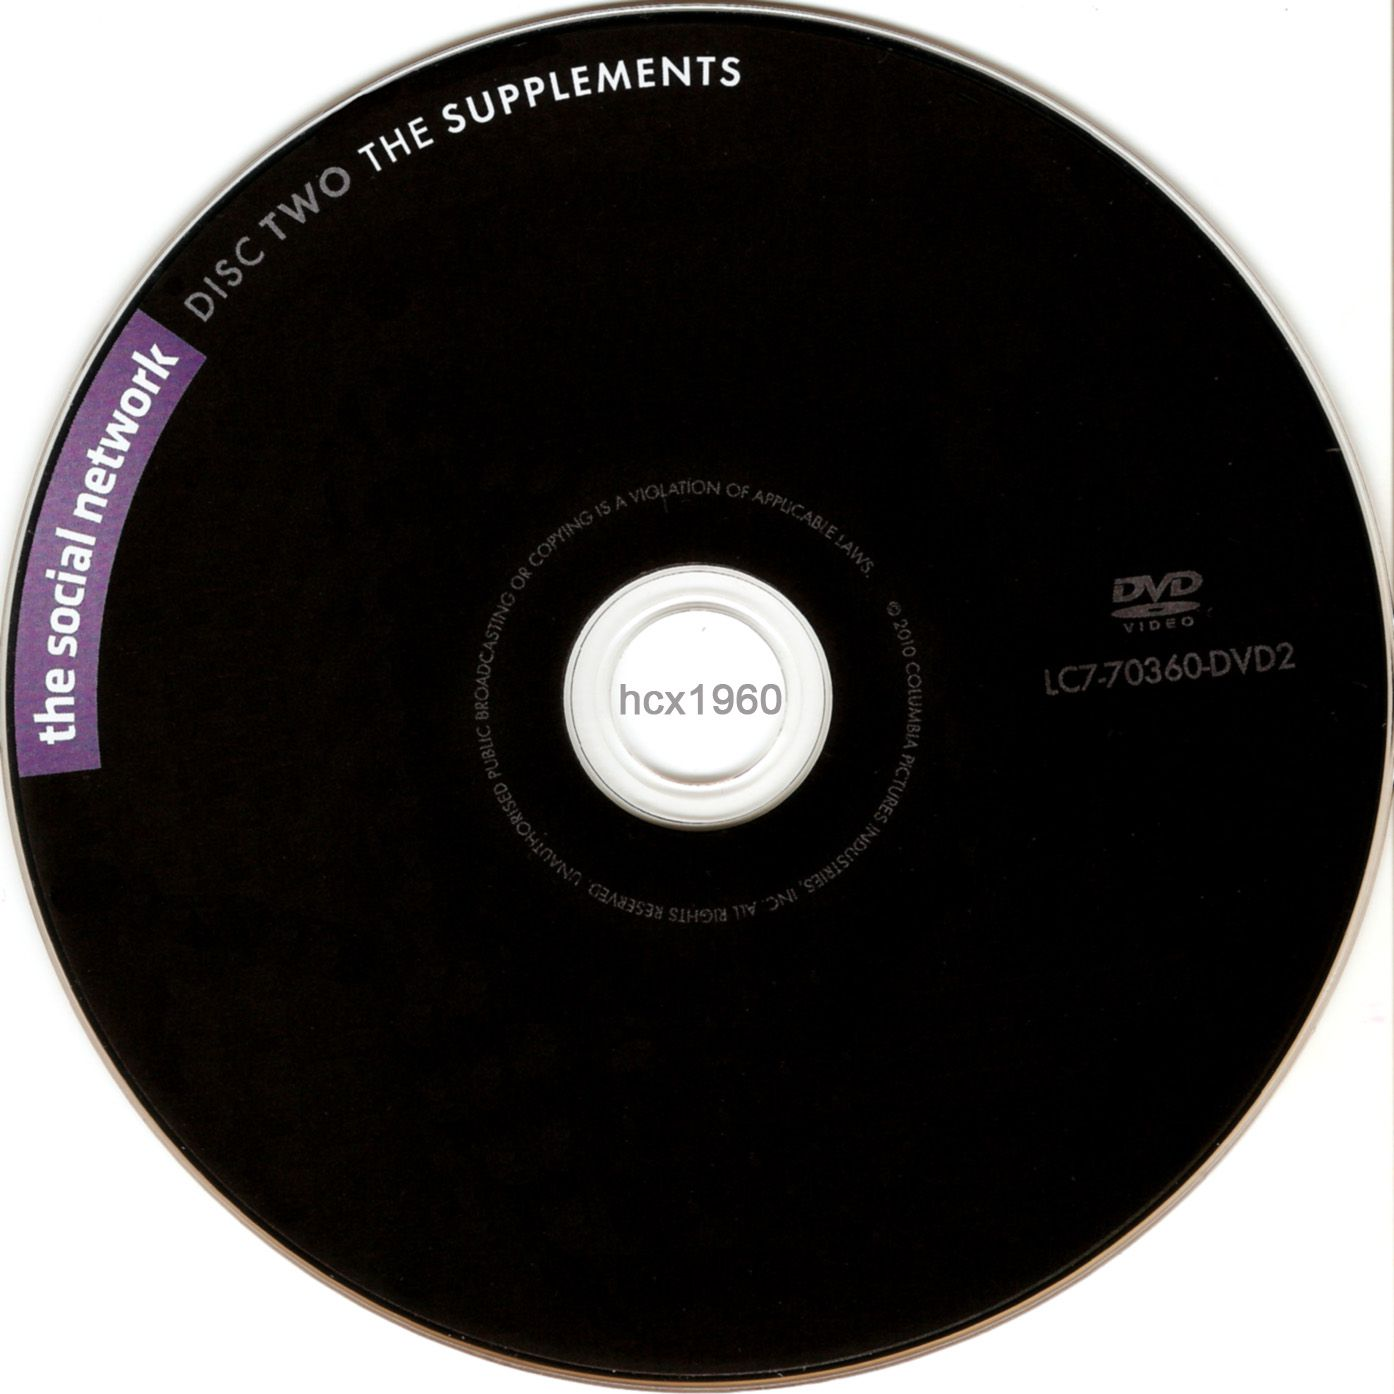 Label DVD The Social Network Disc Two The Supplements